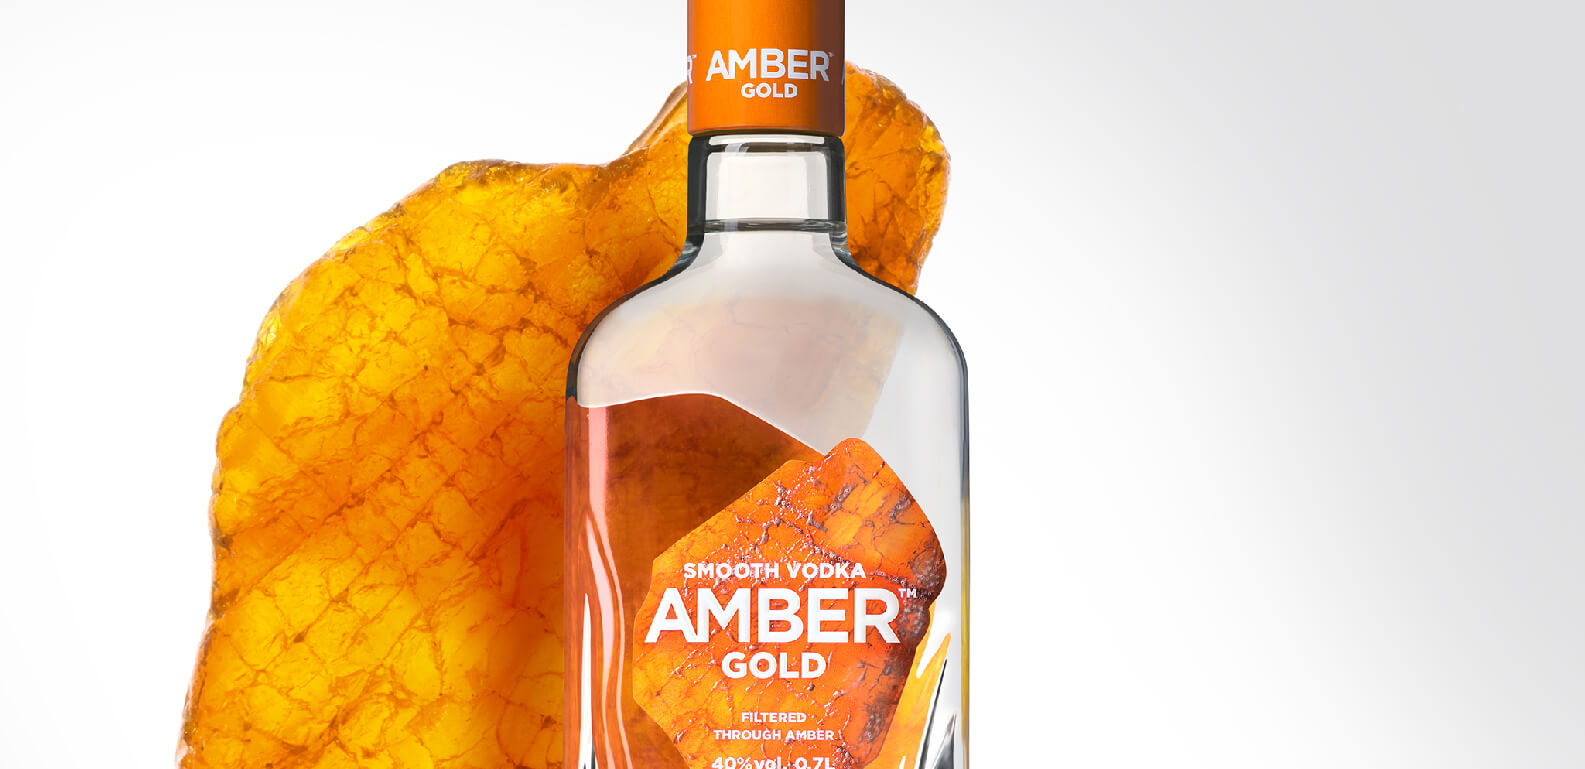 Amber Gold Vodka